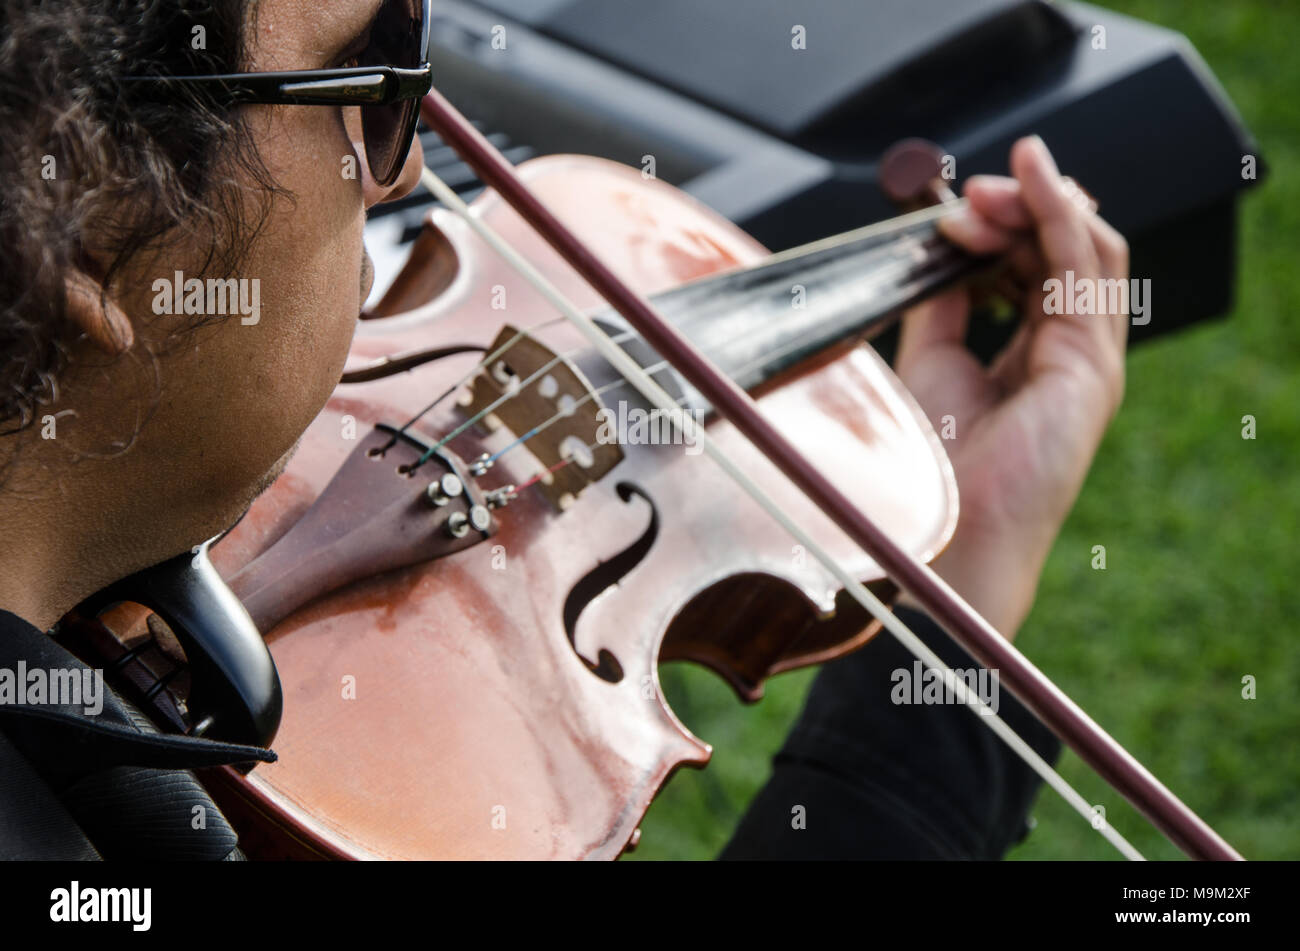 Musician with his violin playing in the street - Stock Image